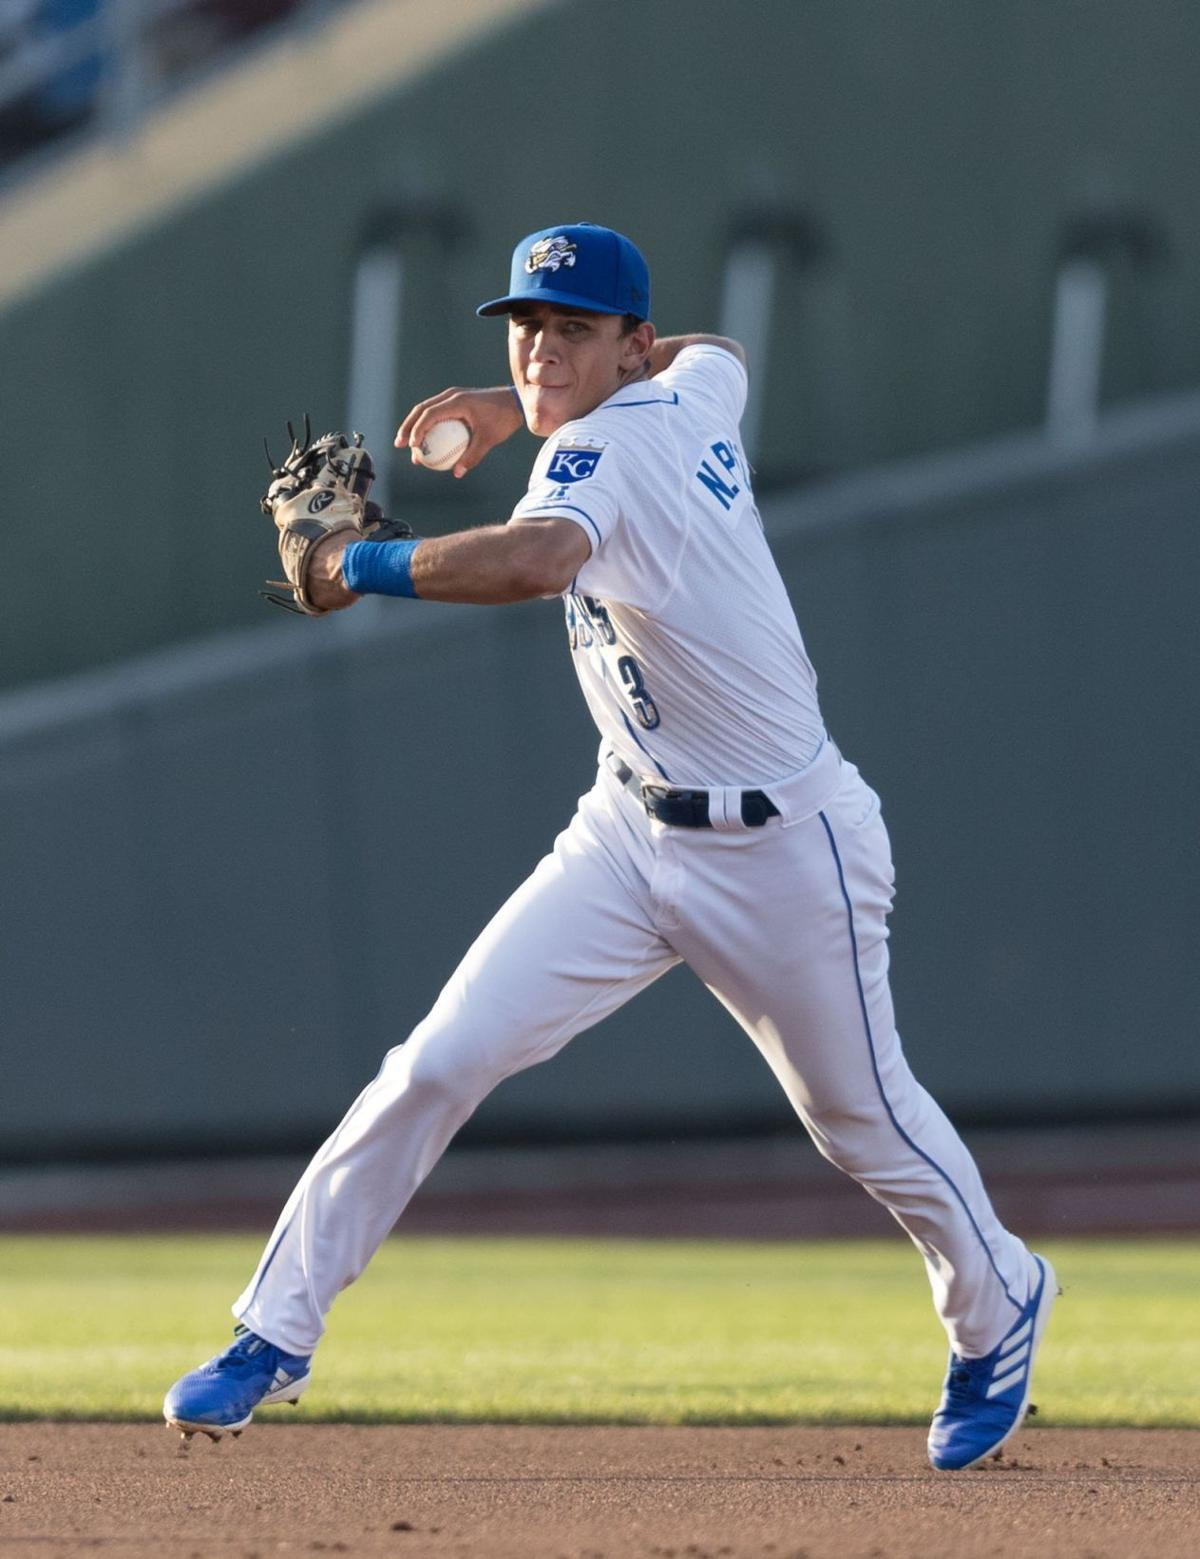 Manager Brian Poldberg upbeat about Chasers' progress, but more roster changes may be looming